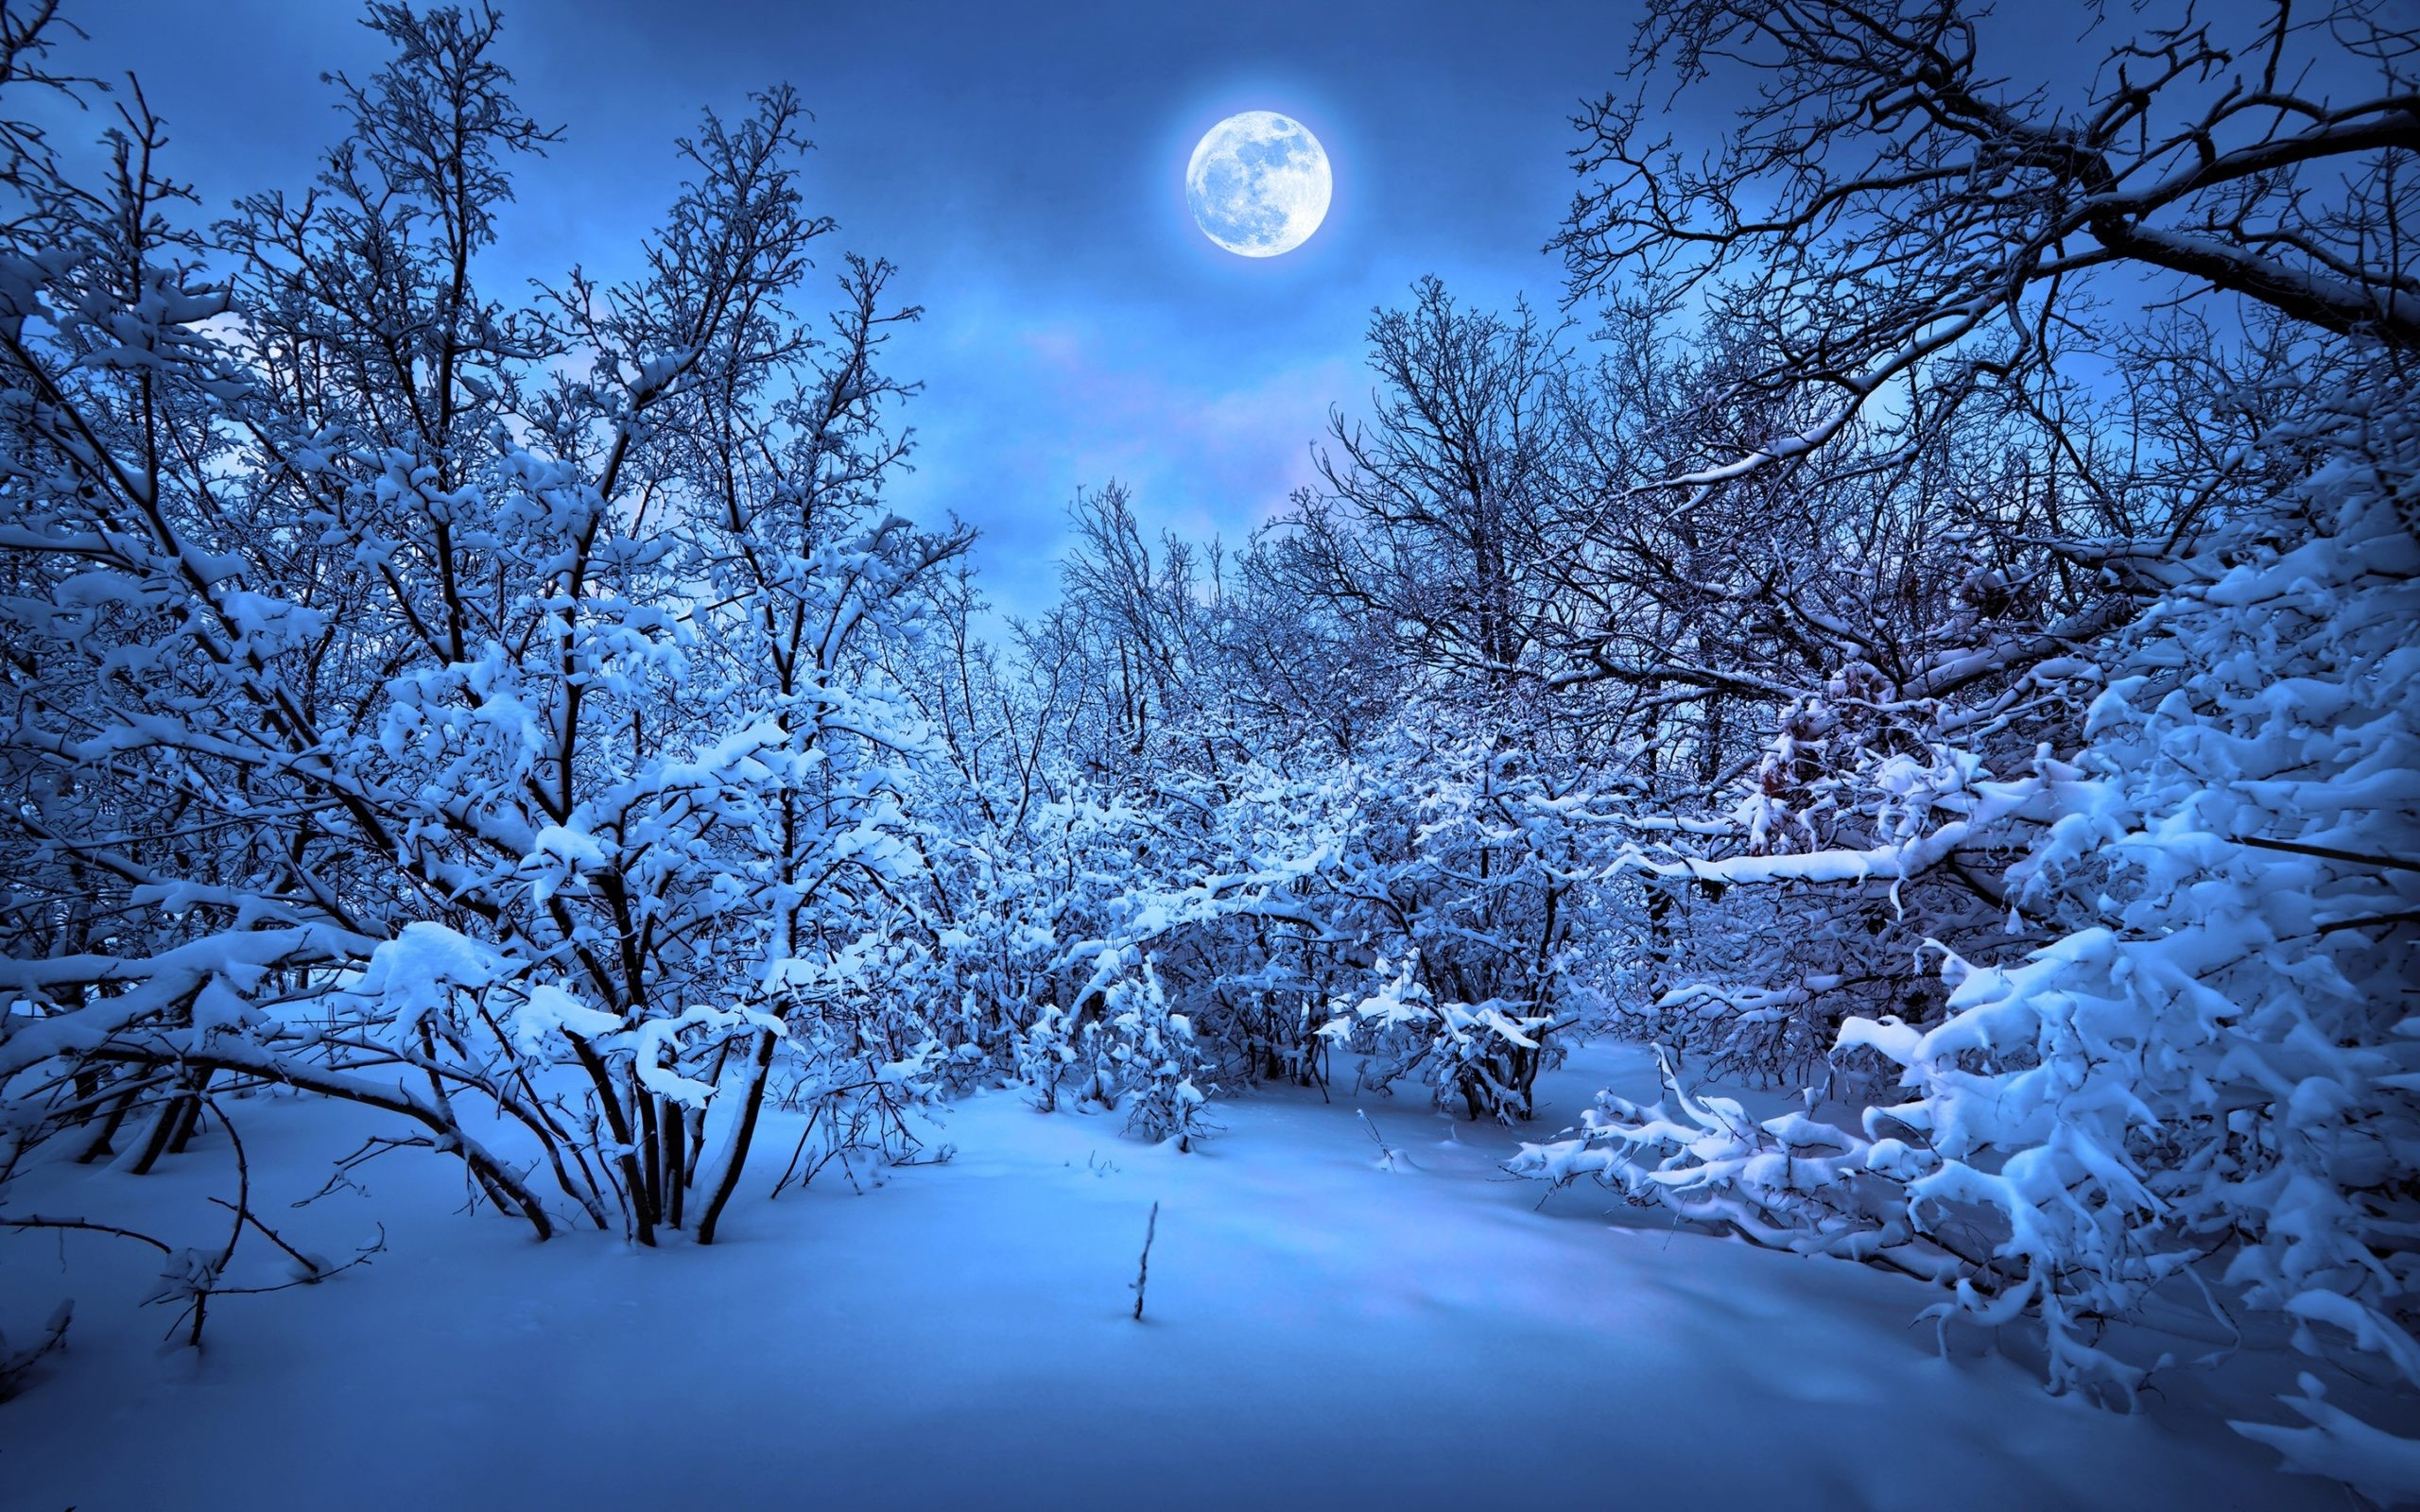 Romantic Winter Wallpaper Images with High Resolution Wallpaper .